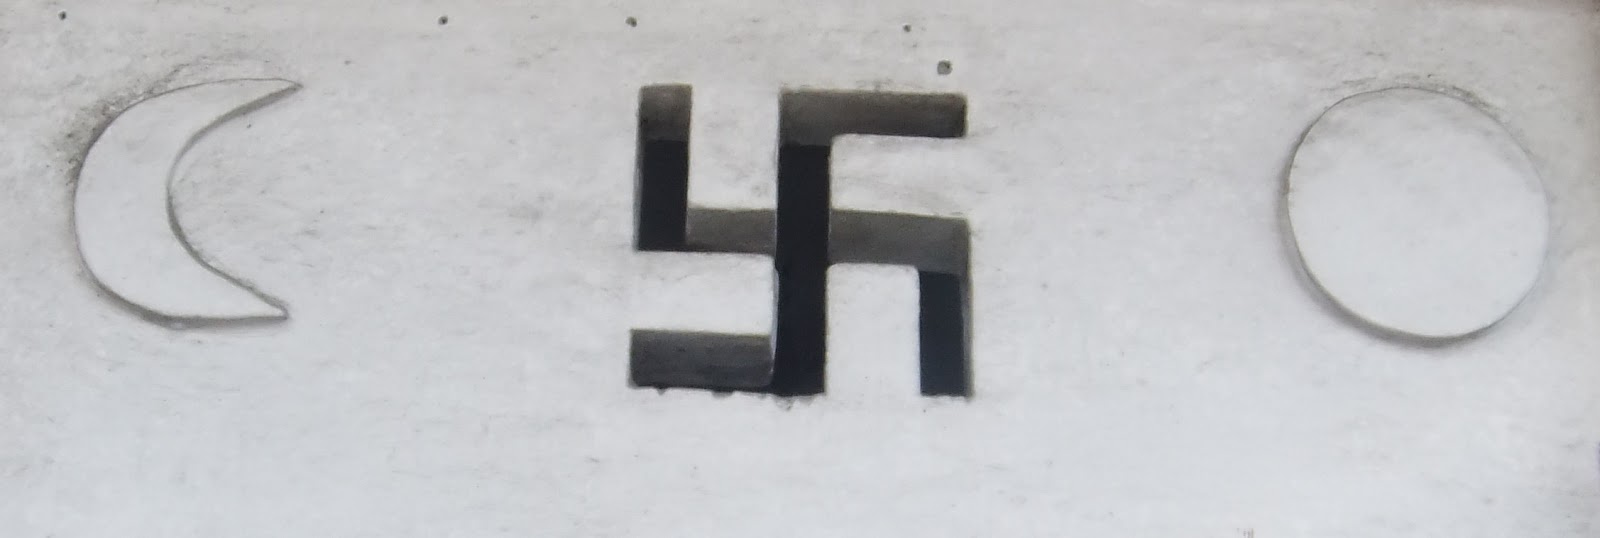 Out of phase december 2015 often the swastika is used as an overtly astronomical symbol as here where is stands apart from the sun and moon it is clearly not a solar symbol here buycottarizona